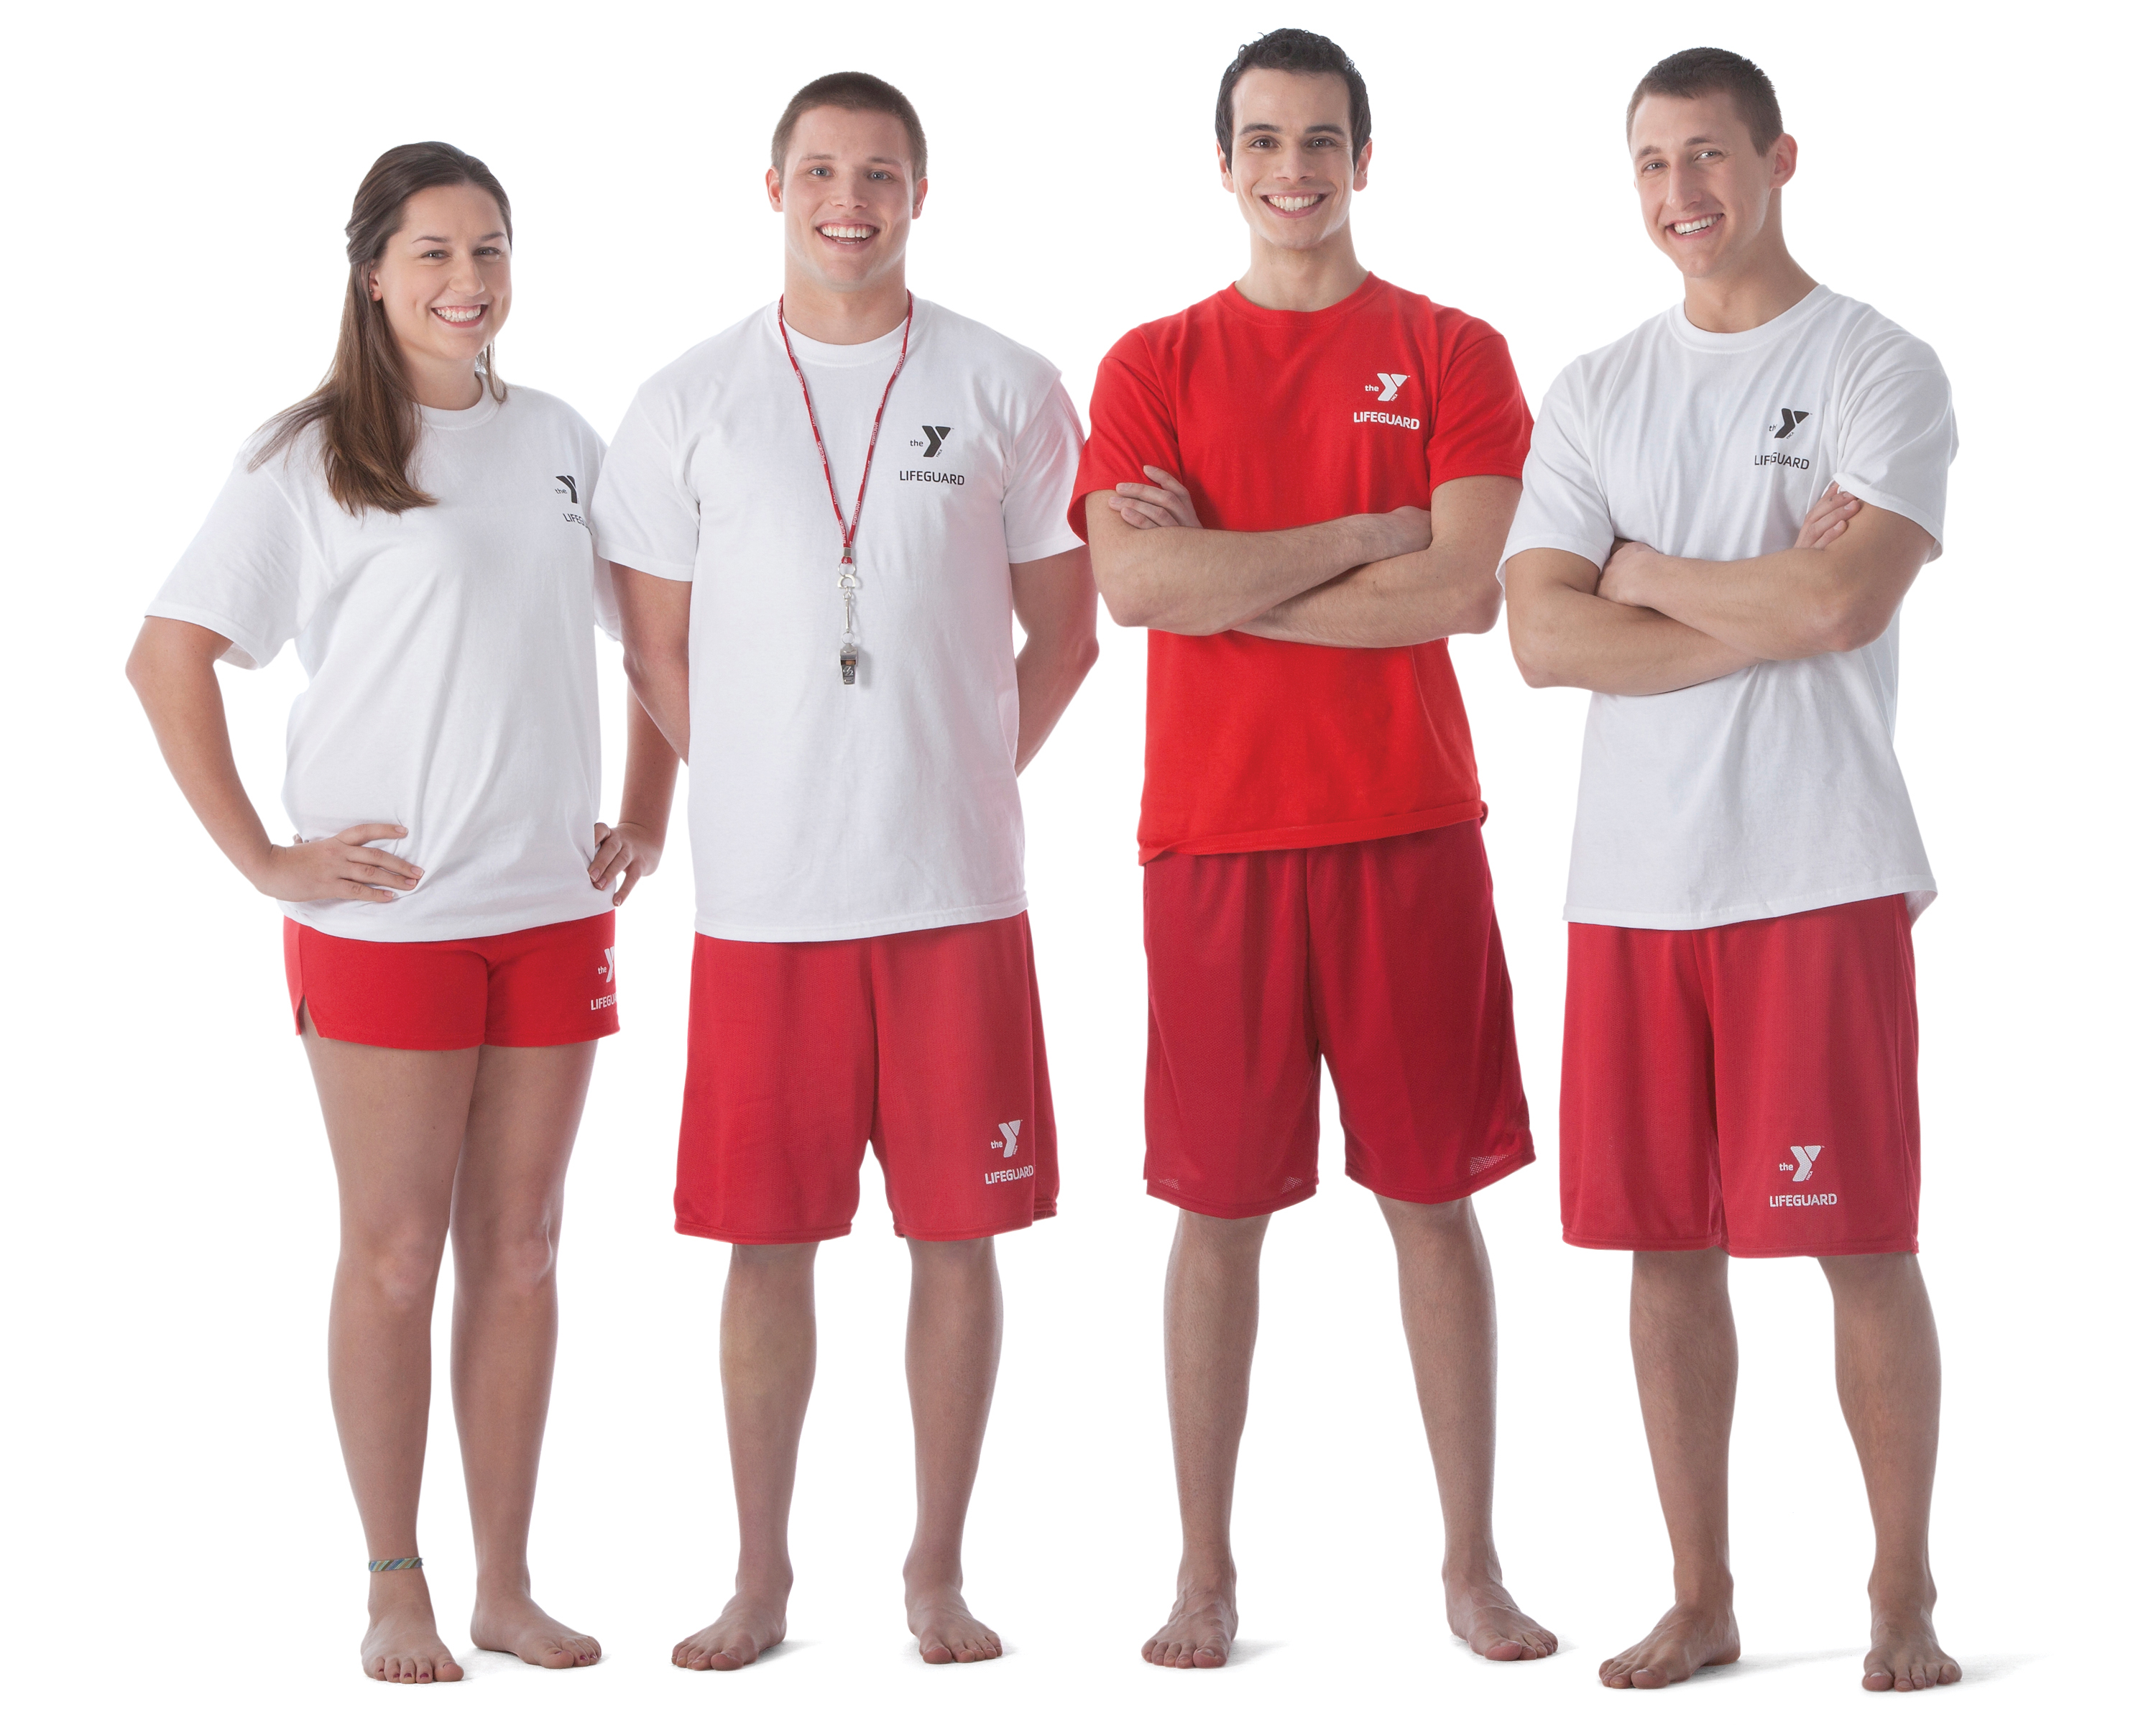 lifeguards ymca